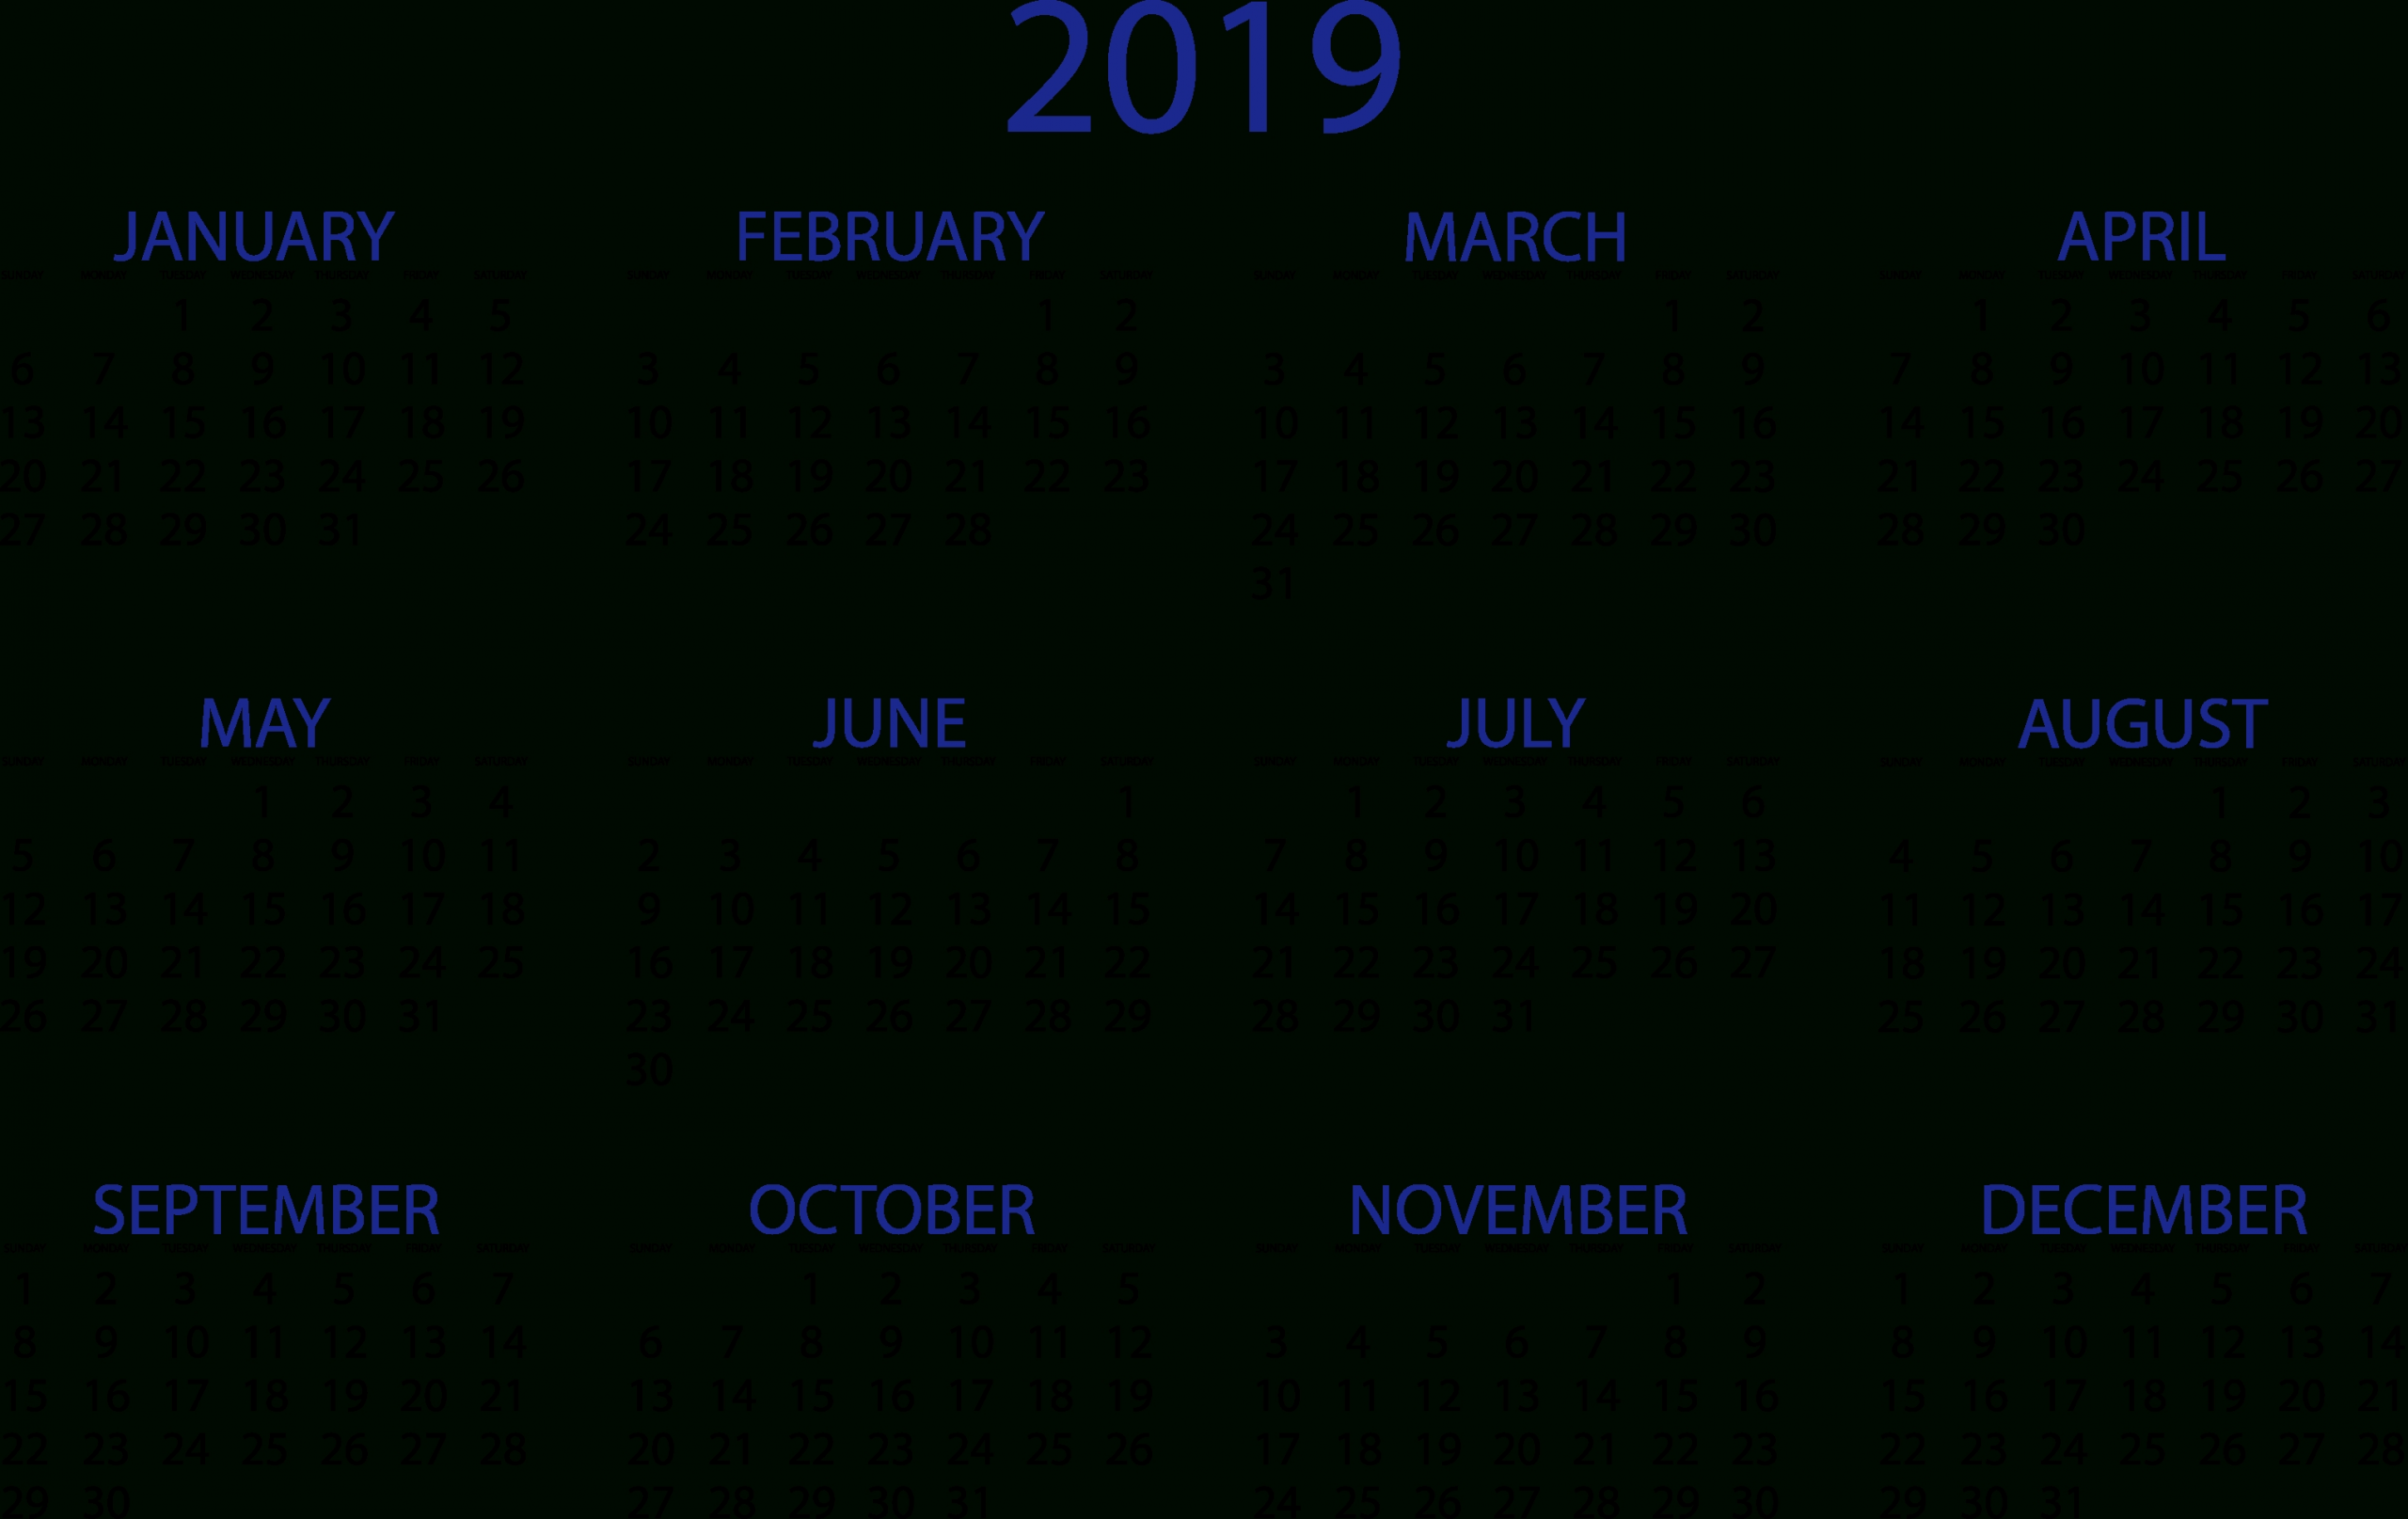 2019 Calendars Simple & Quality Templates